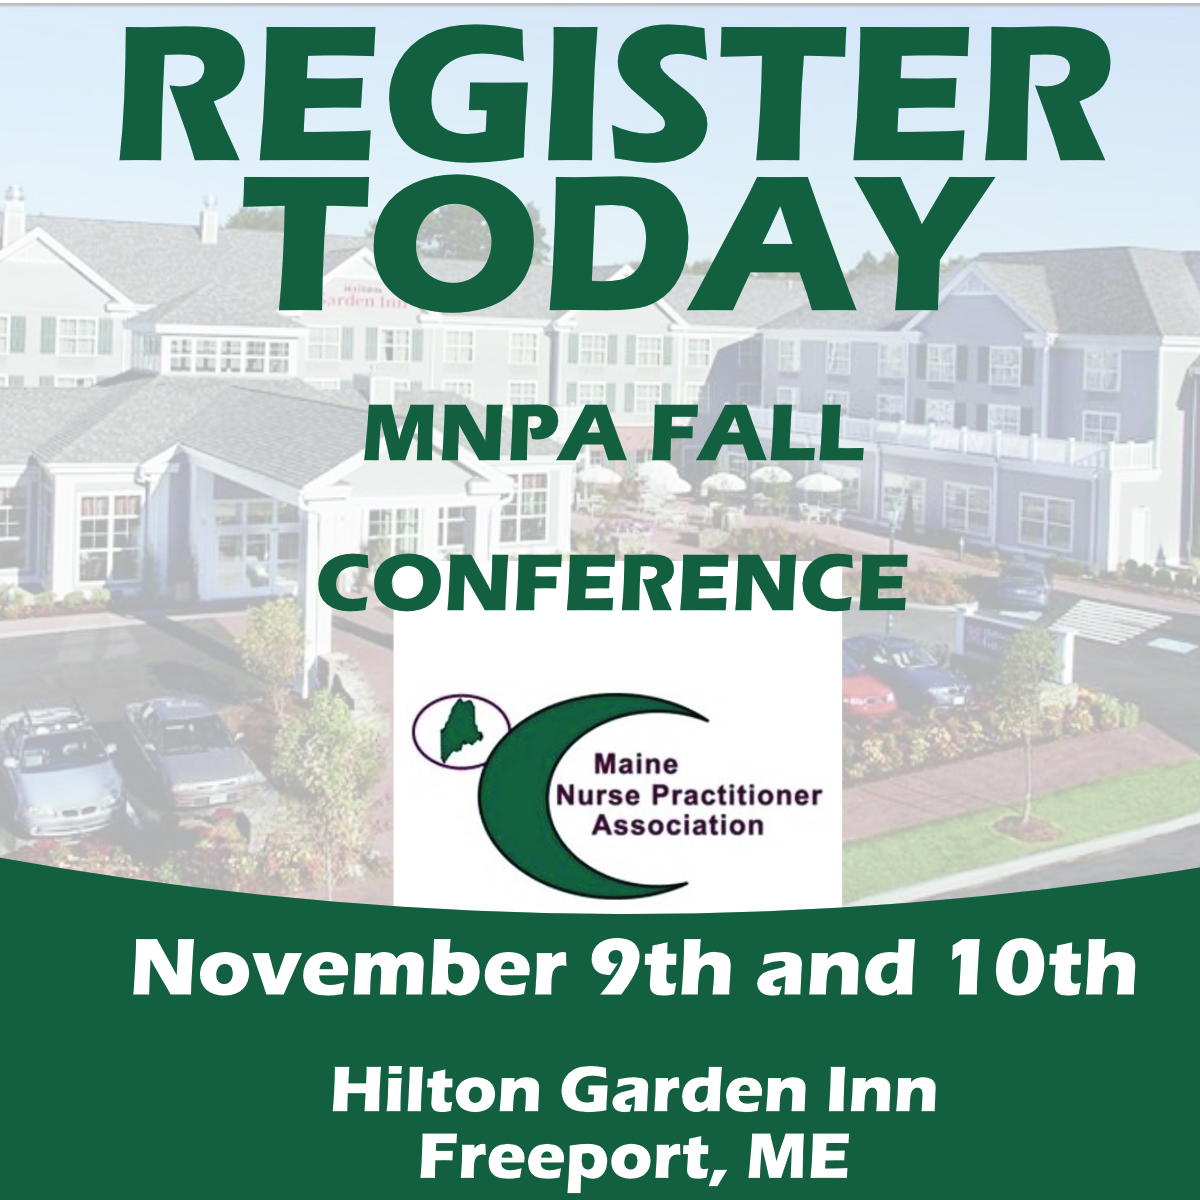 register today for MNPA conference